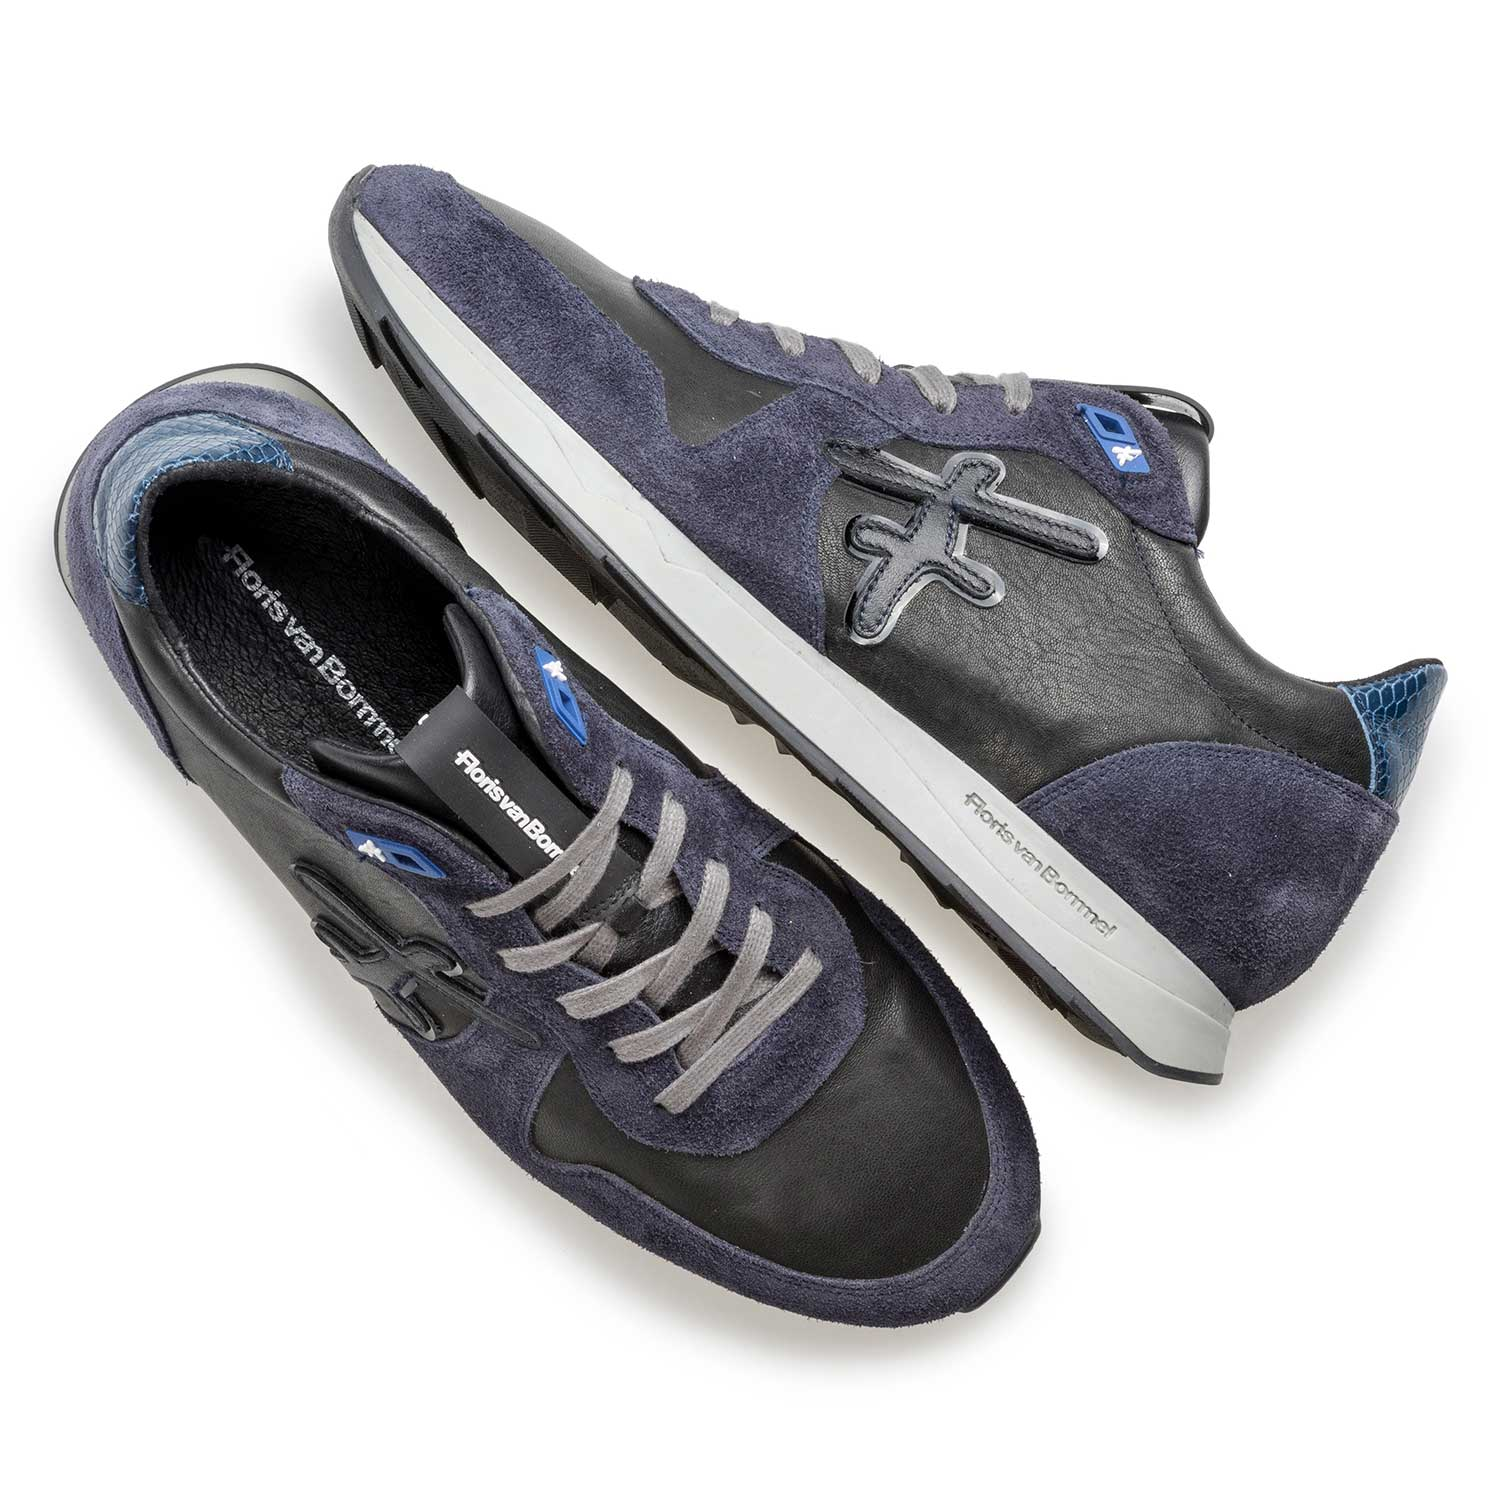 16226/07 - Nappa leather sneaker with blue suede leather accents